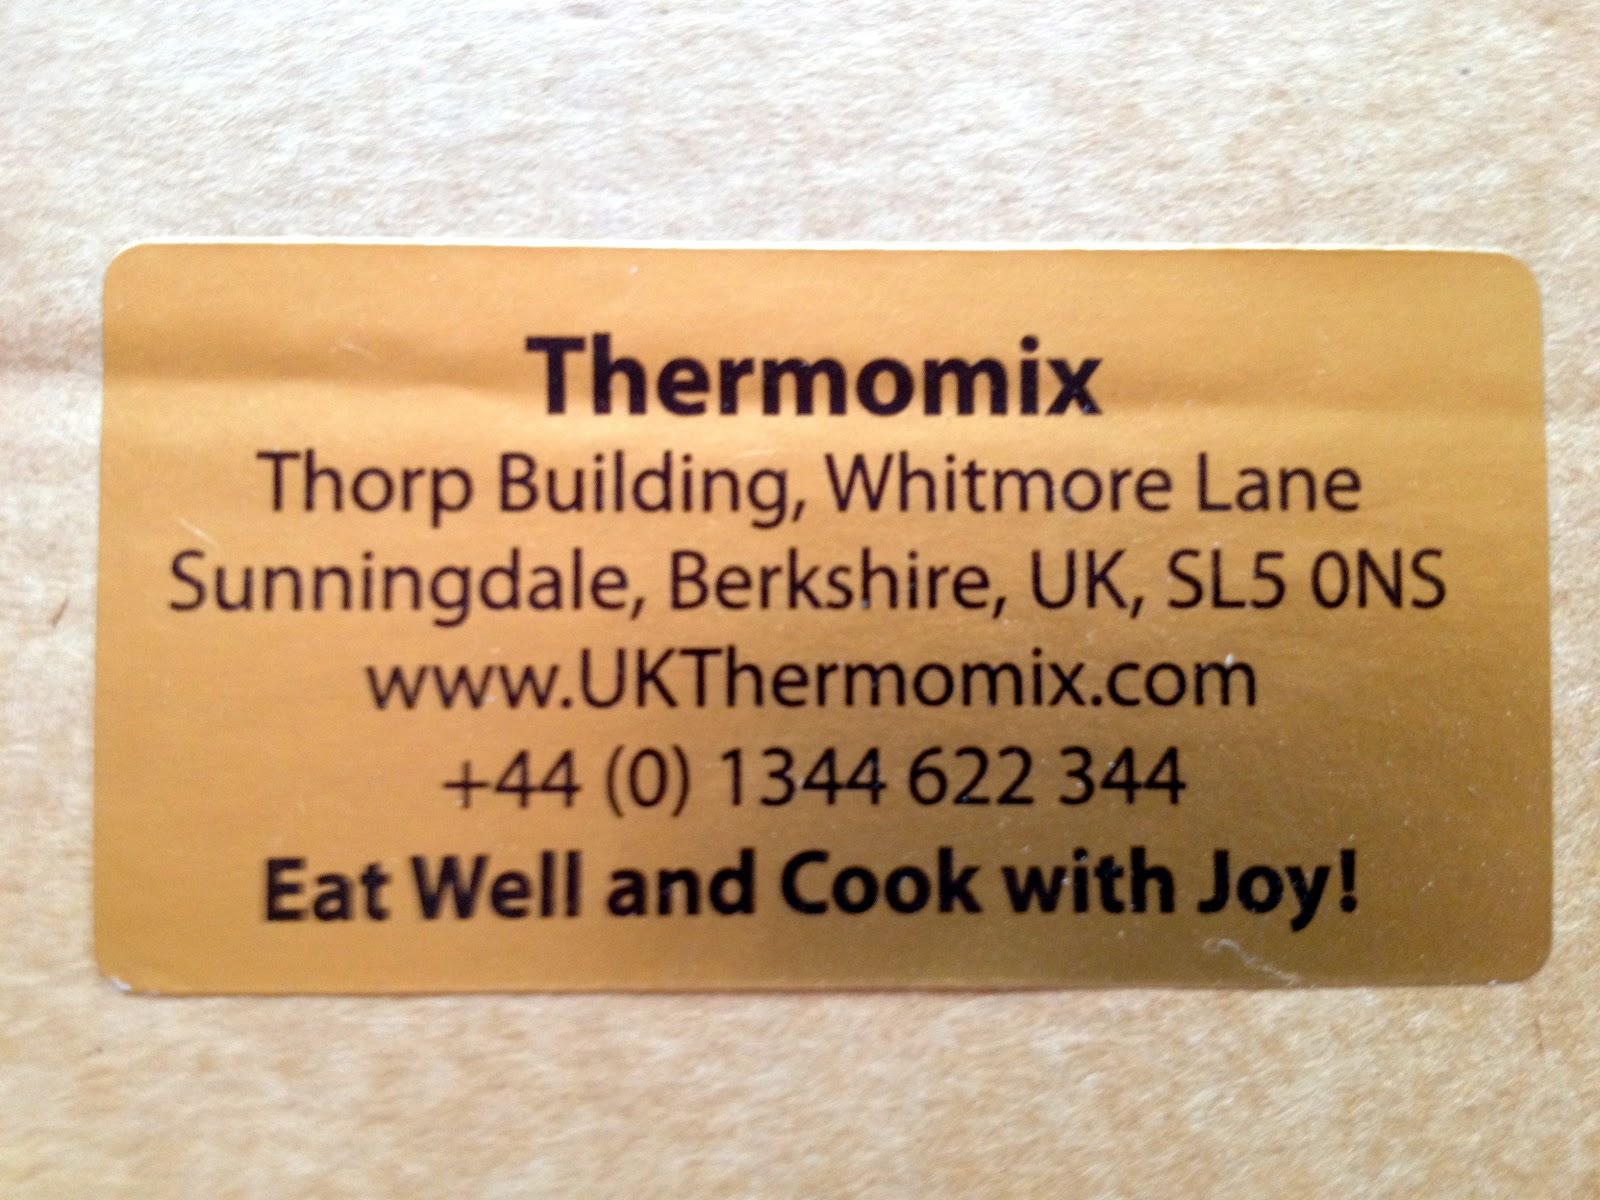 feisty tapas thermomix ordering and delivery in the uk. Black Bedroom Furniture Sets. Home Design Ideas